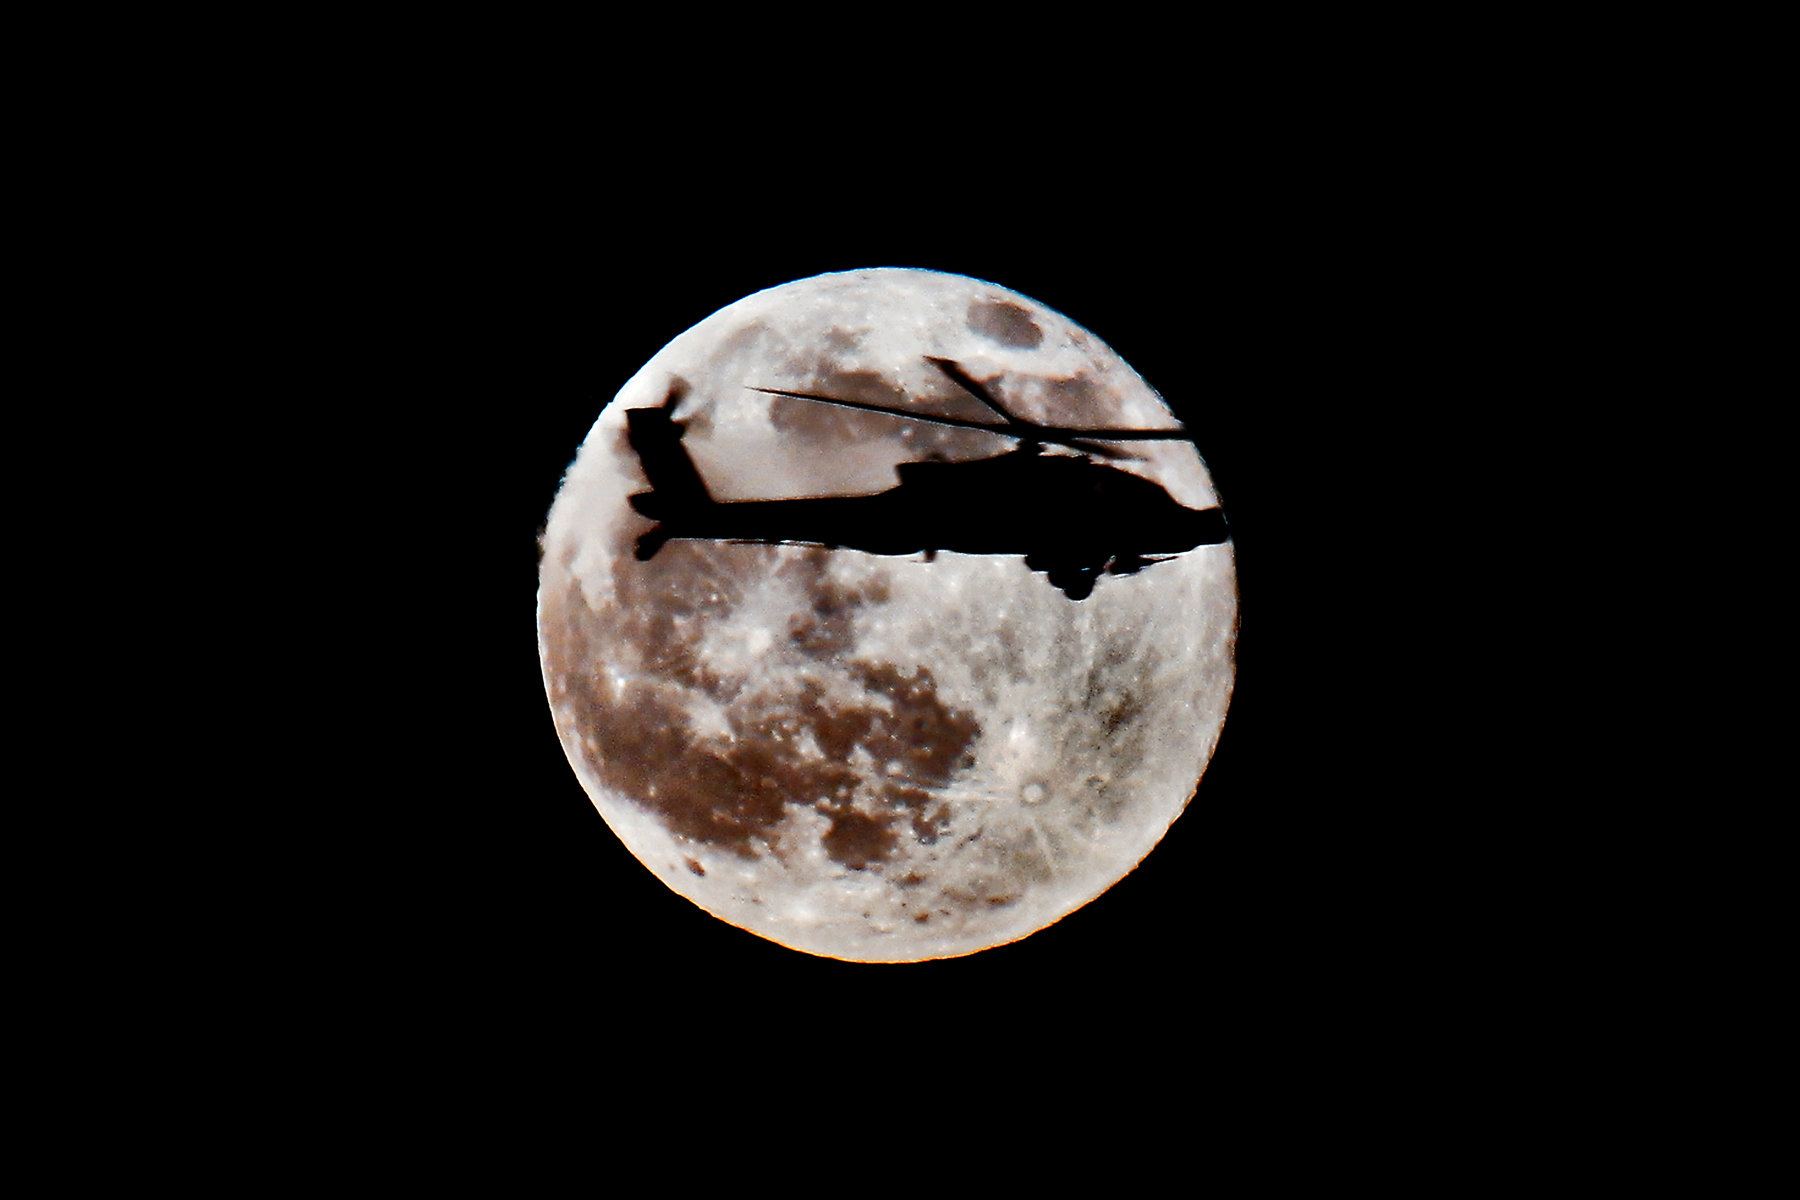 Helicopters moon silhouettes vehicles HD Wallpaper